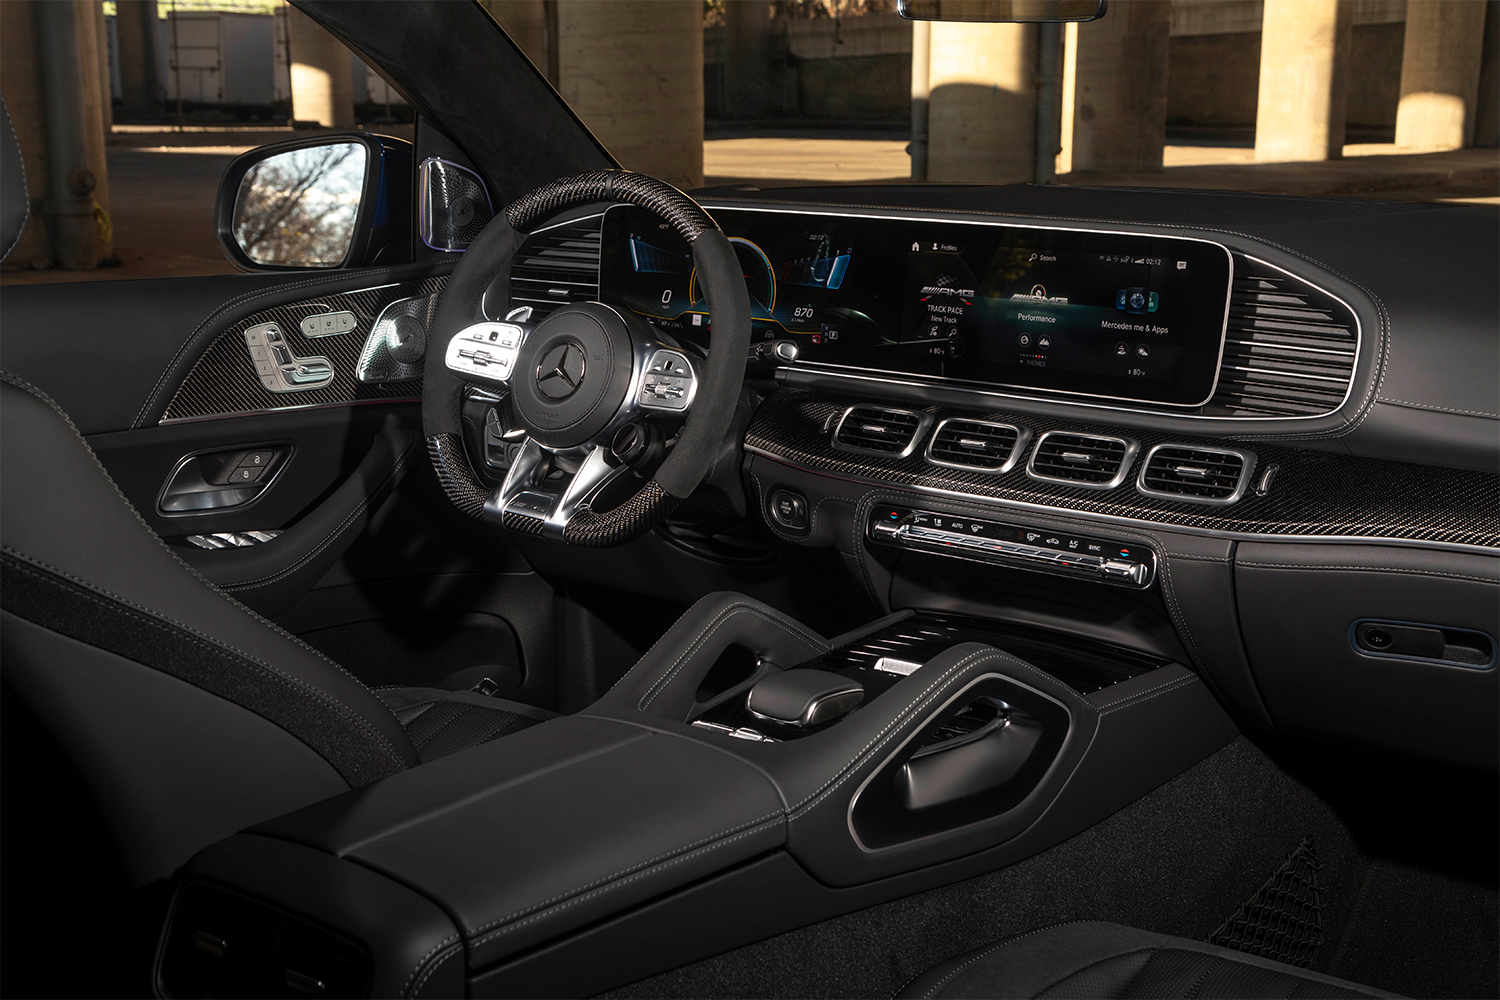 The front dash of the Mercedes-AMG GLE 63 S Coupe